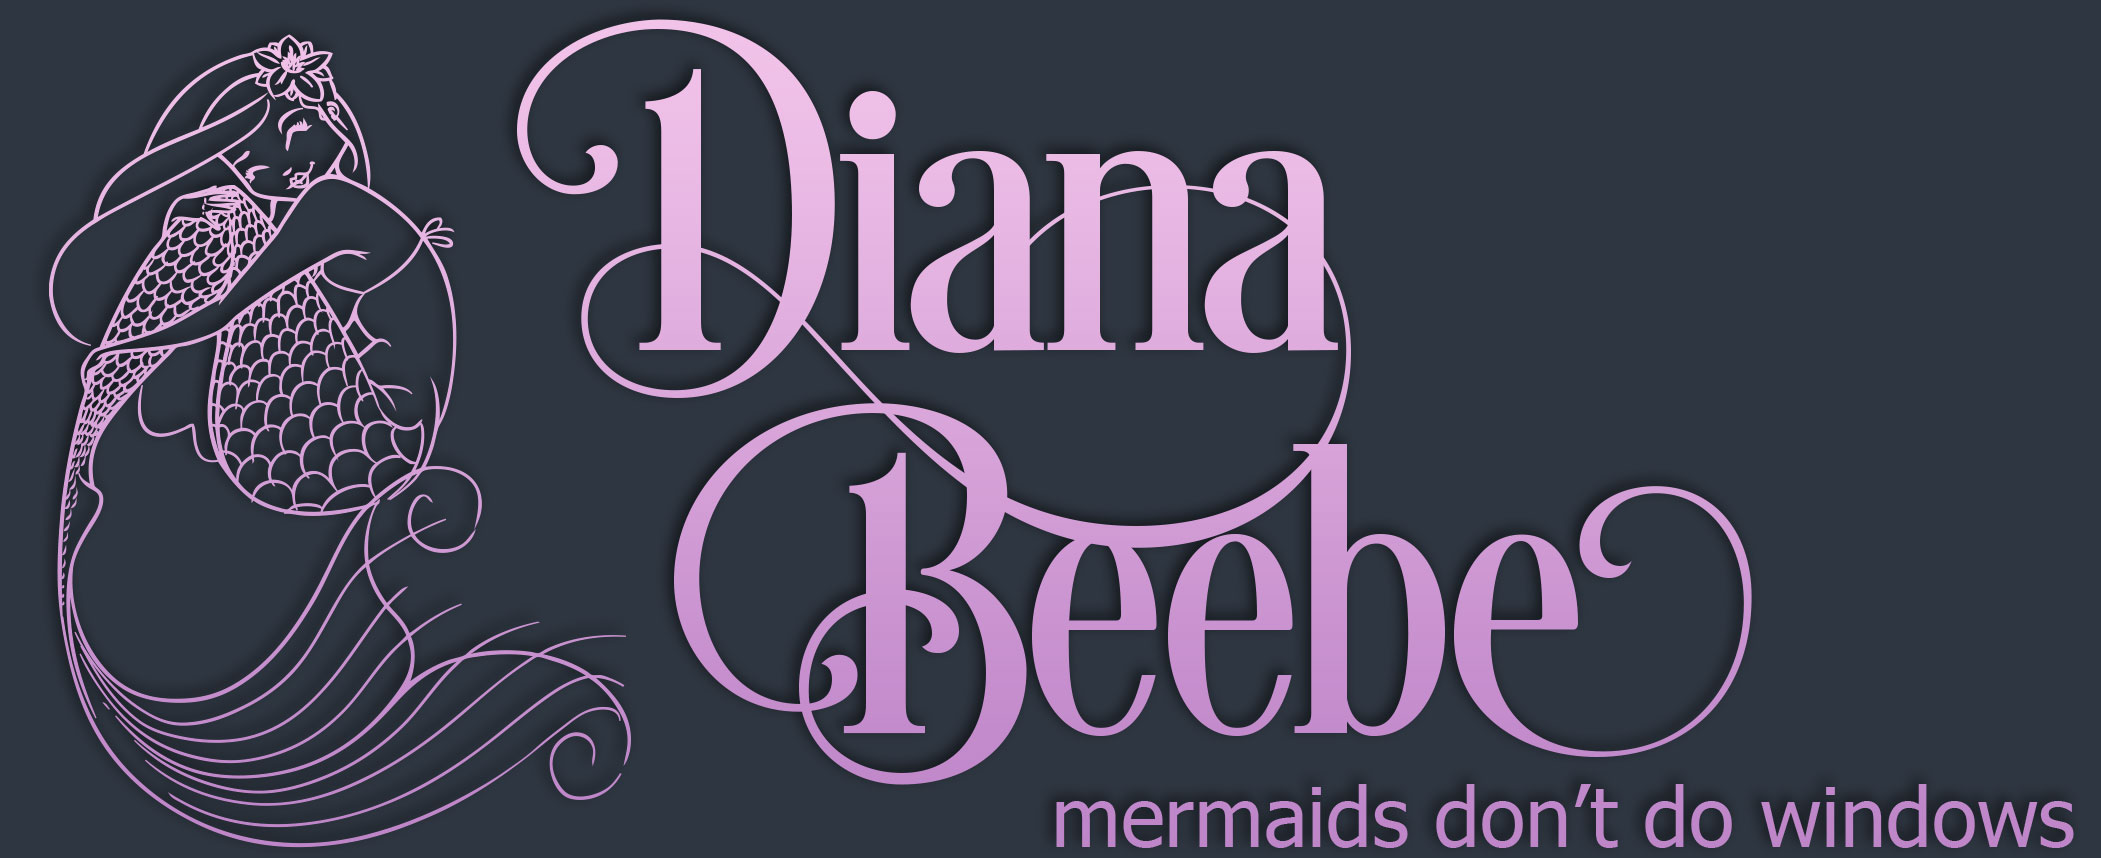 Author Diana Beebe - Mermaids don't do windows